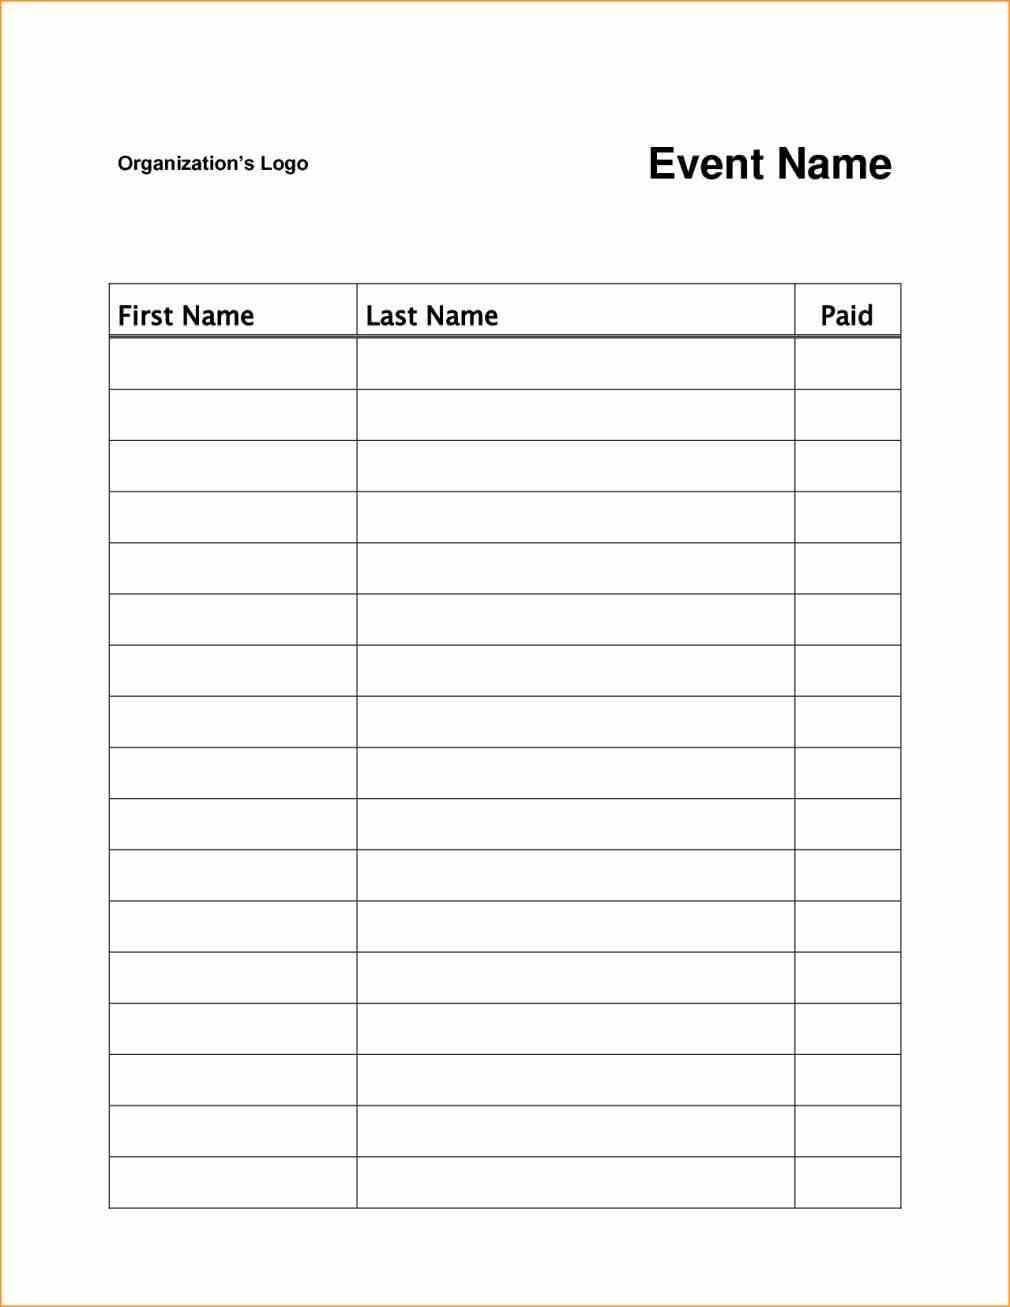 Event Or Class Workshop Forms A Sign Up Sheet Template Word within Event Survey Template Word